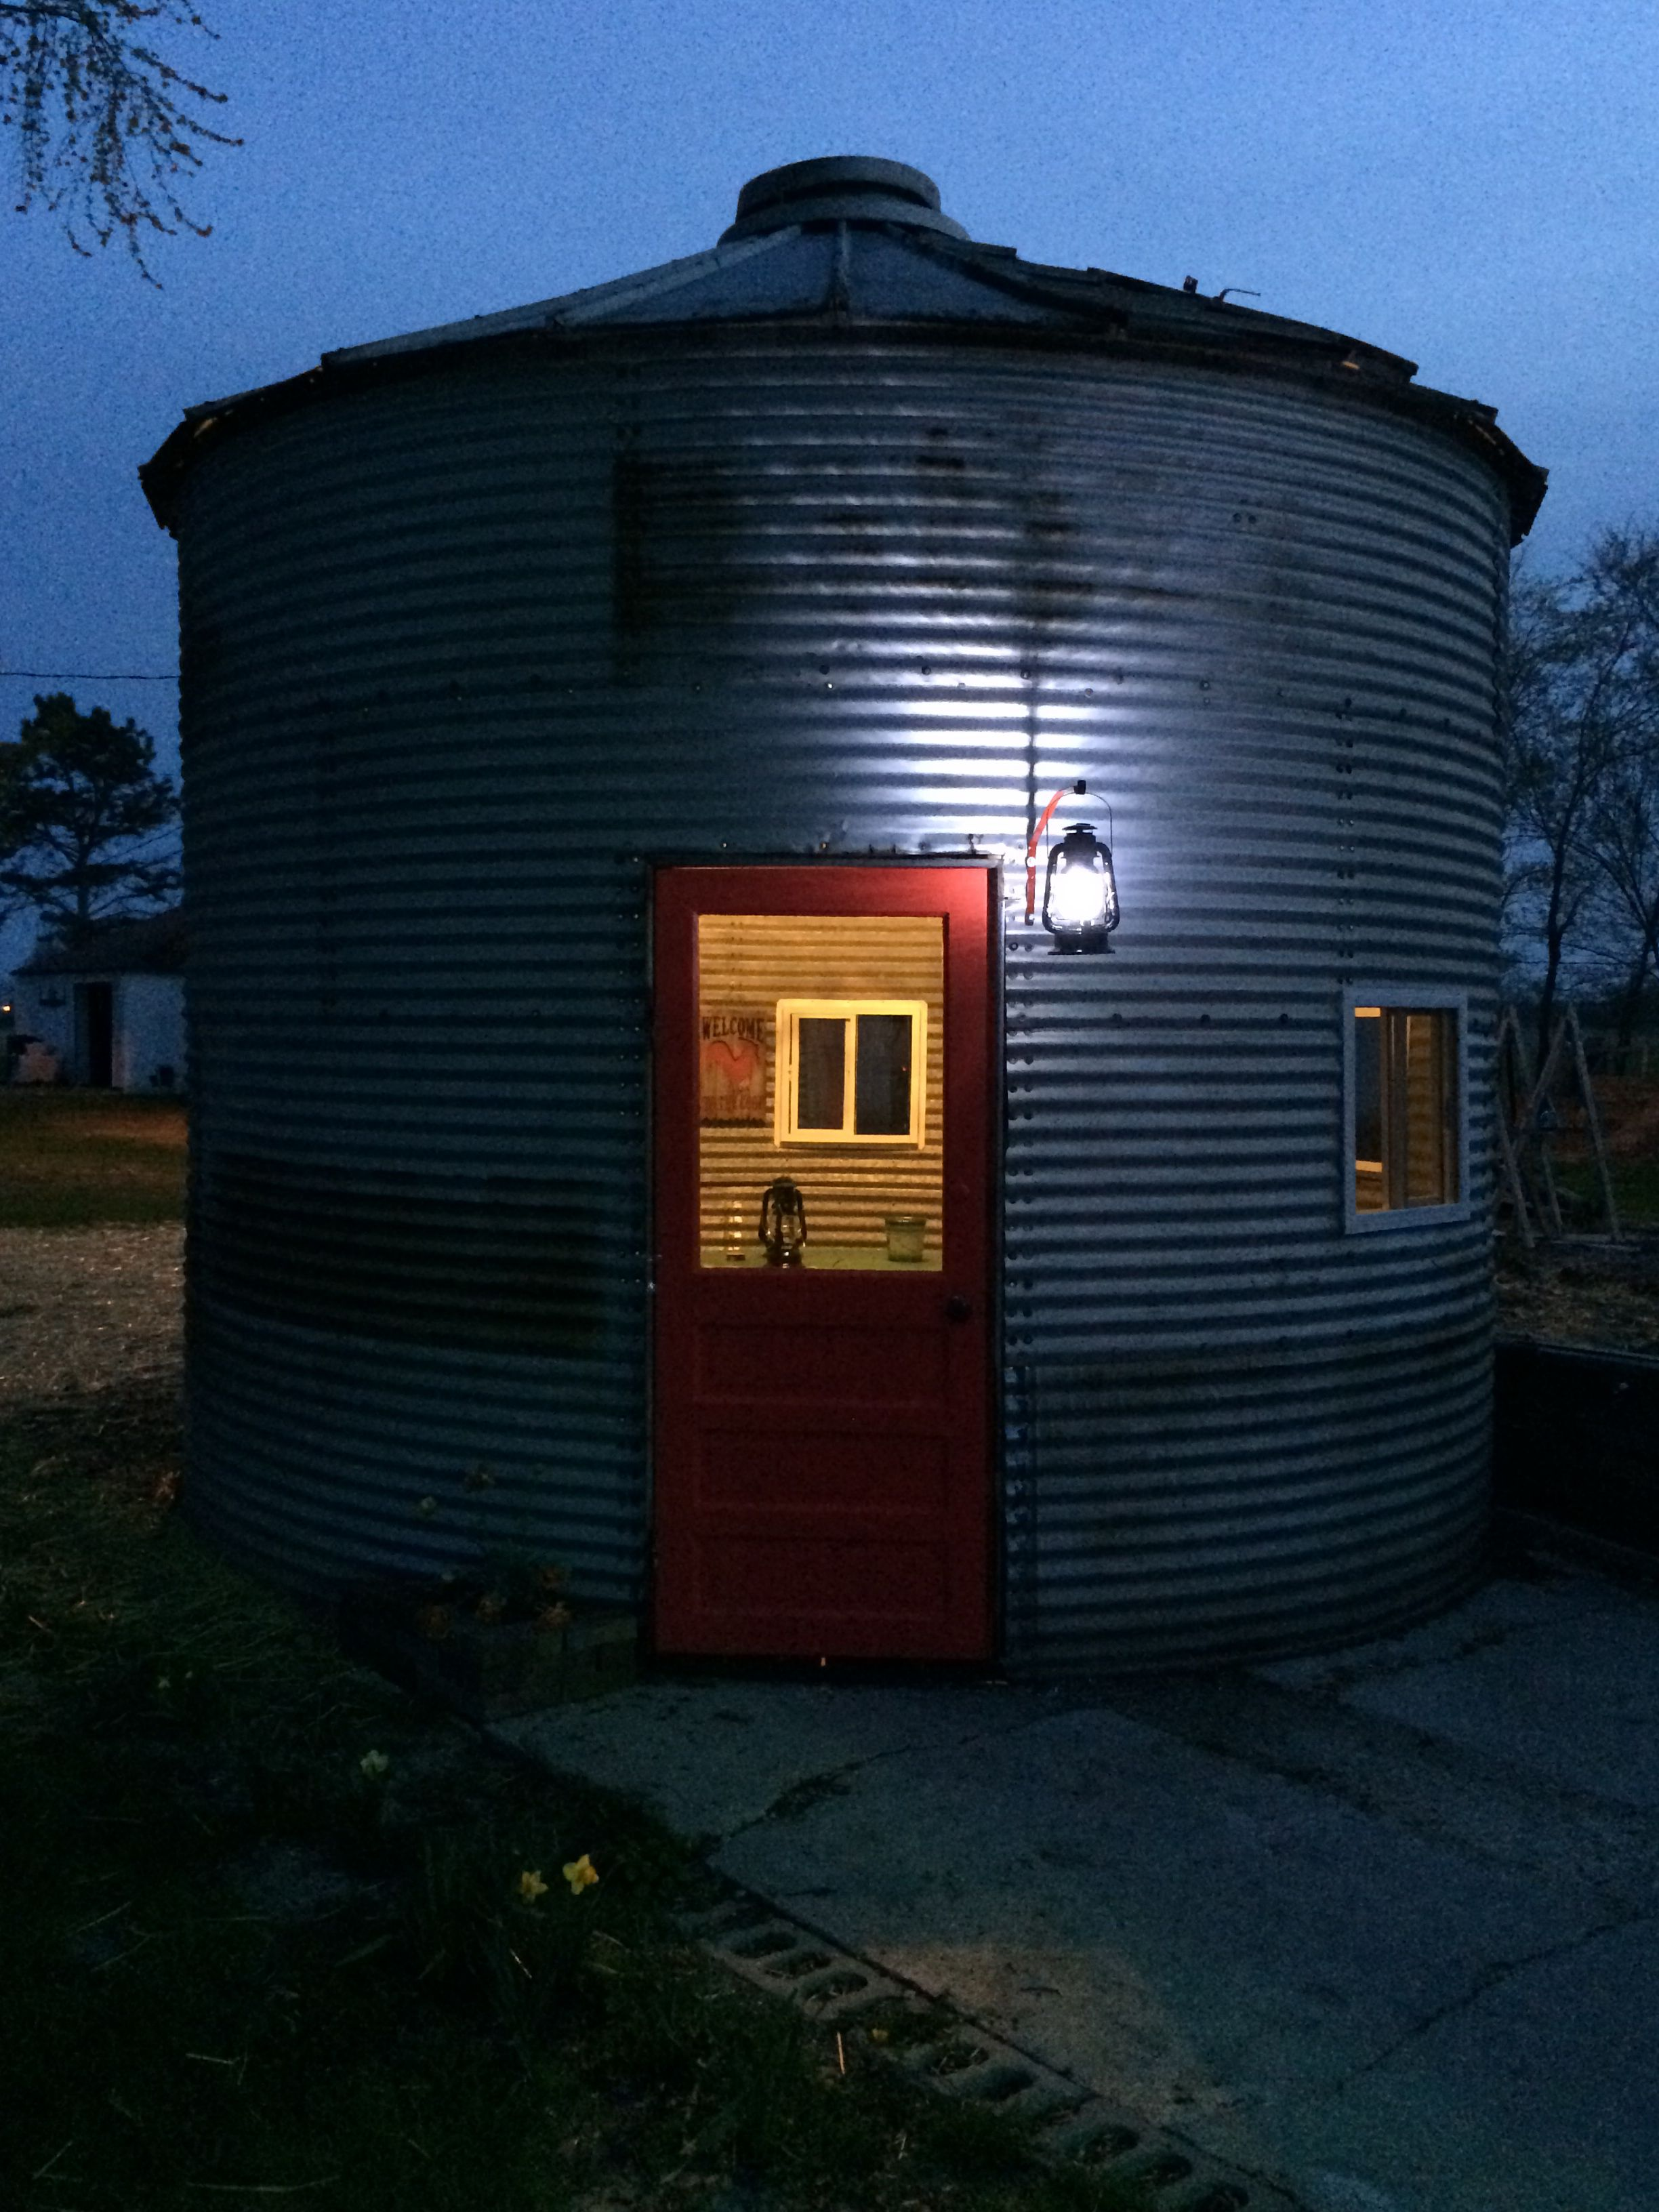 security wiring plans audio wiring plans for nightclub our grain bin at night we put an old door on it grain #11